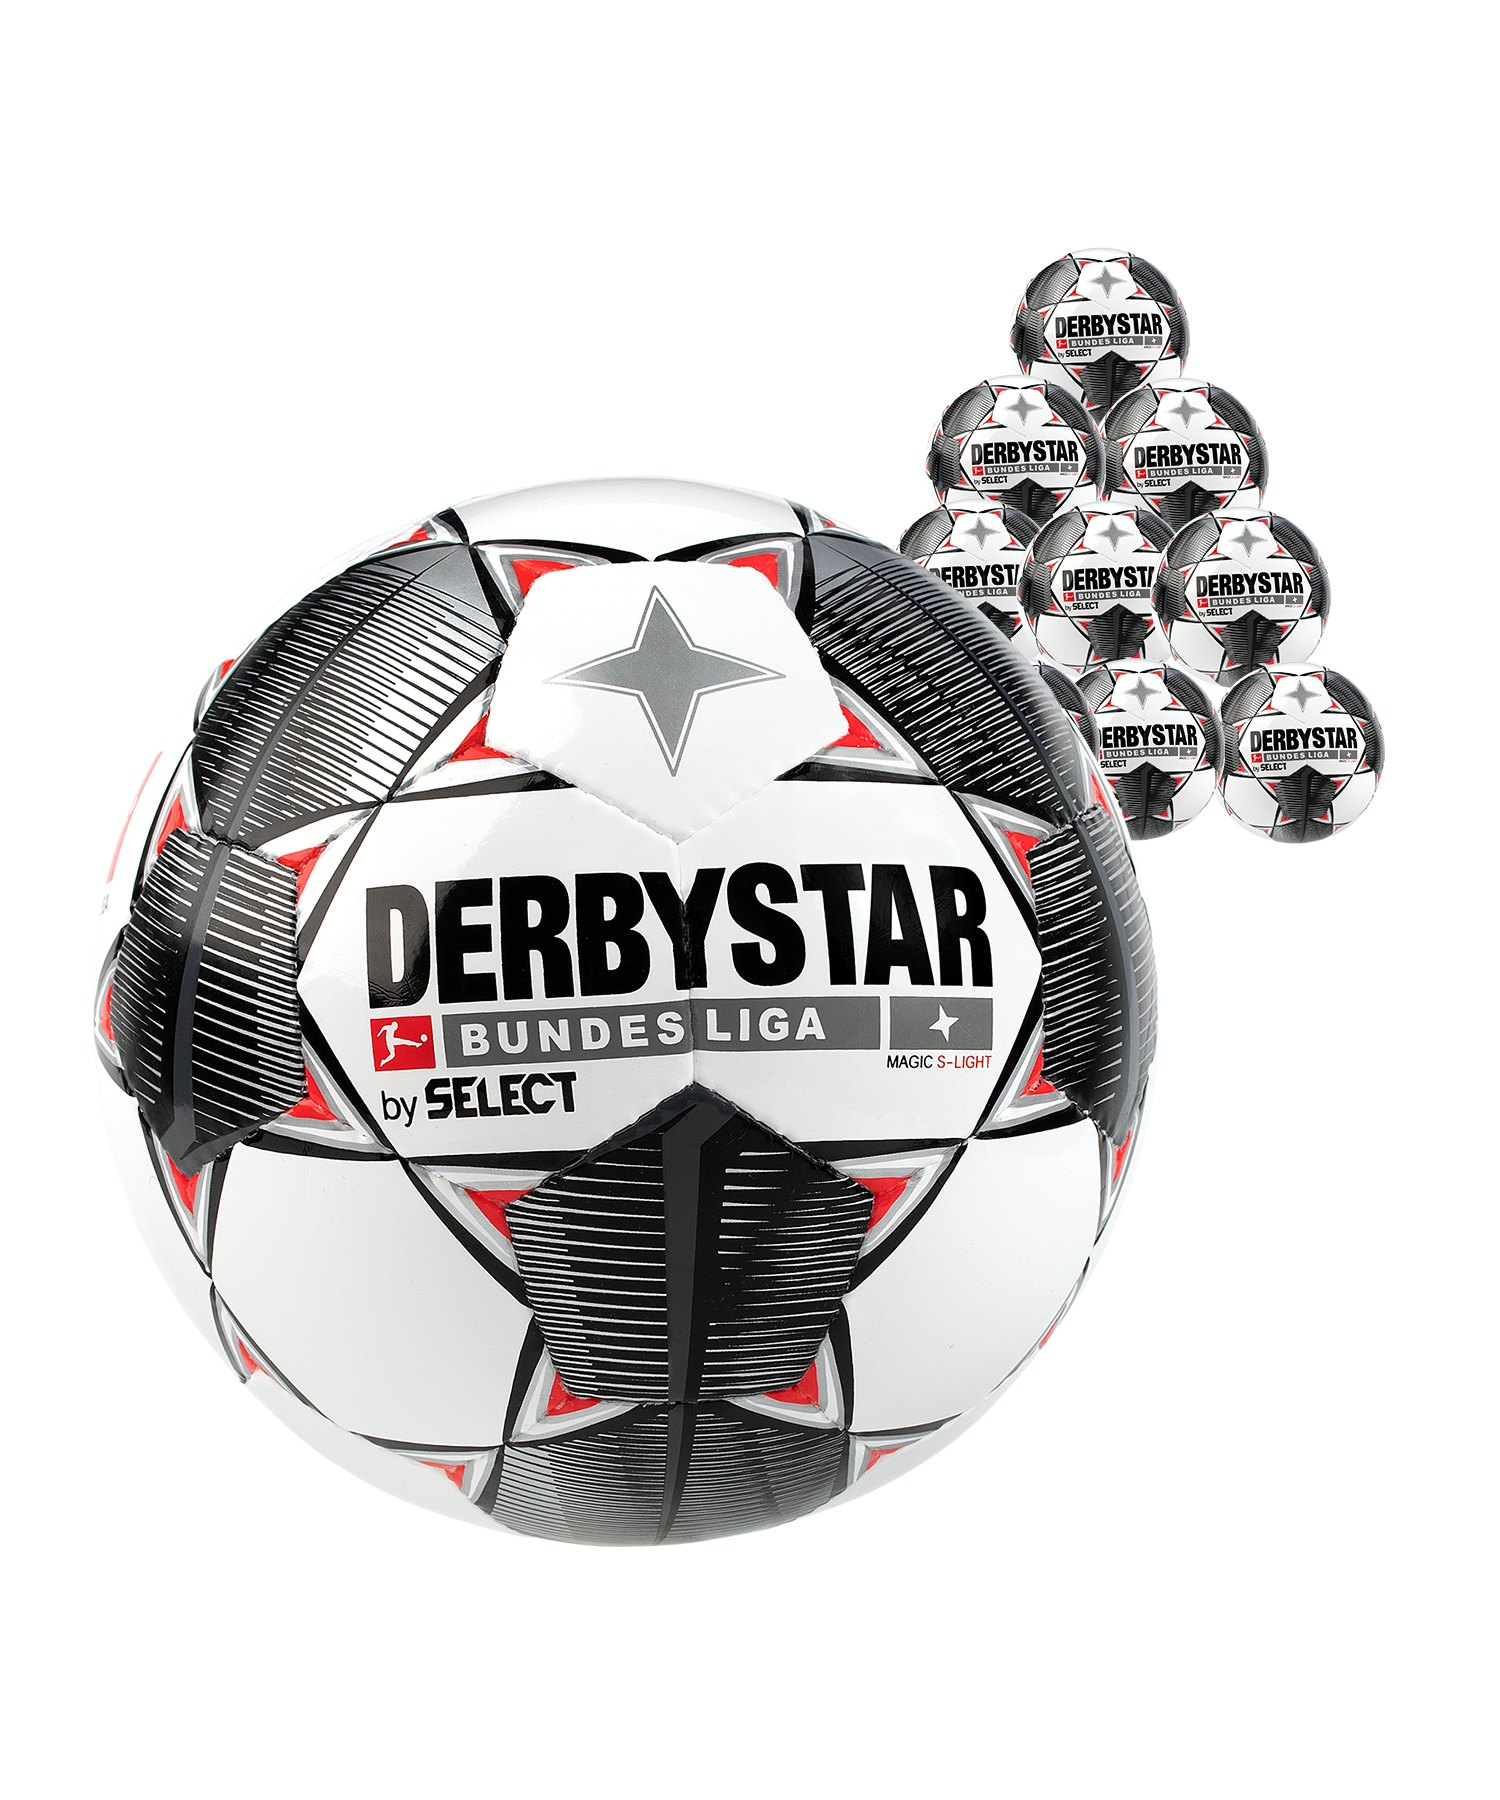 Derbystar Buli Magic S-Light 290g 20x Gr.3 Weiss F019 - weiss